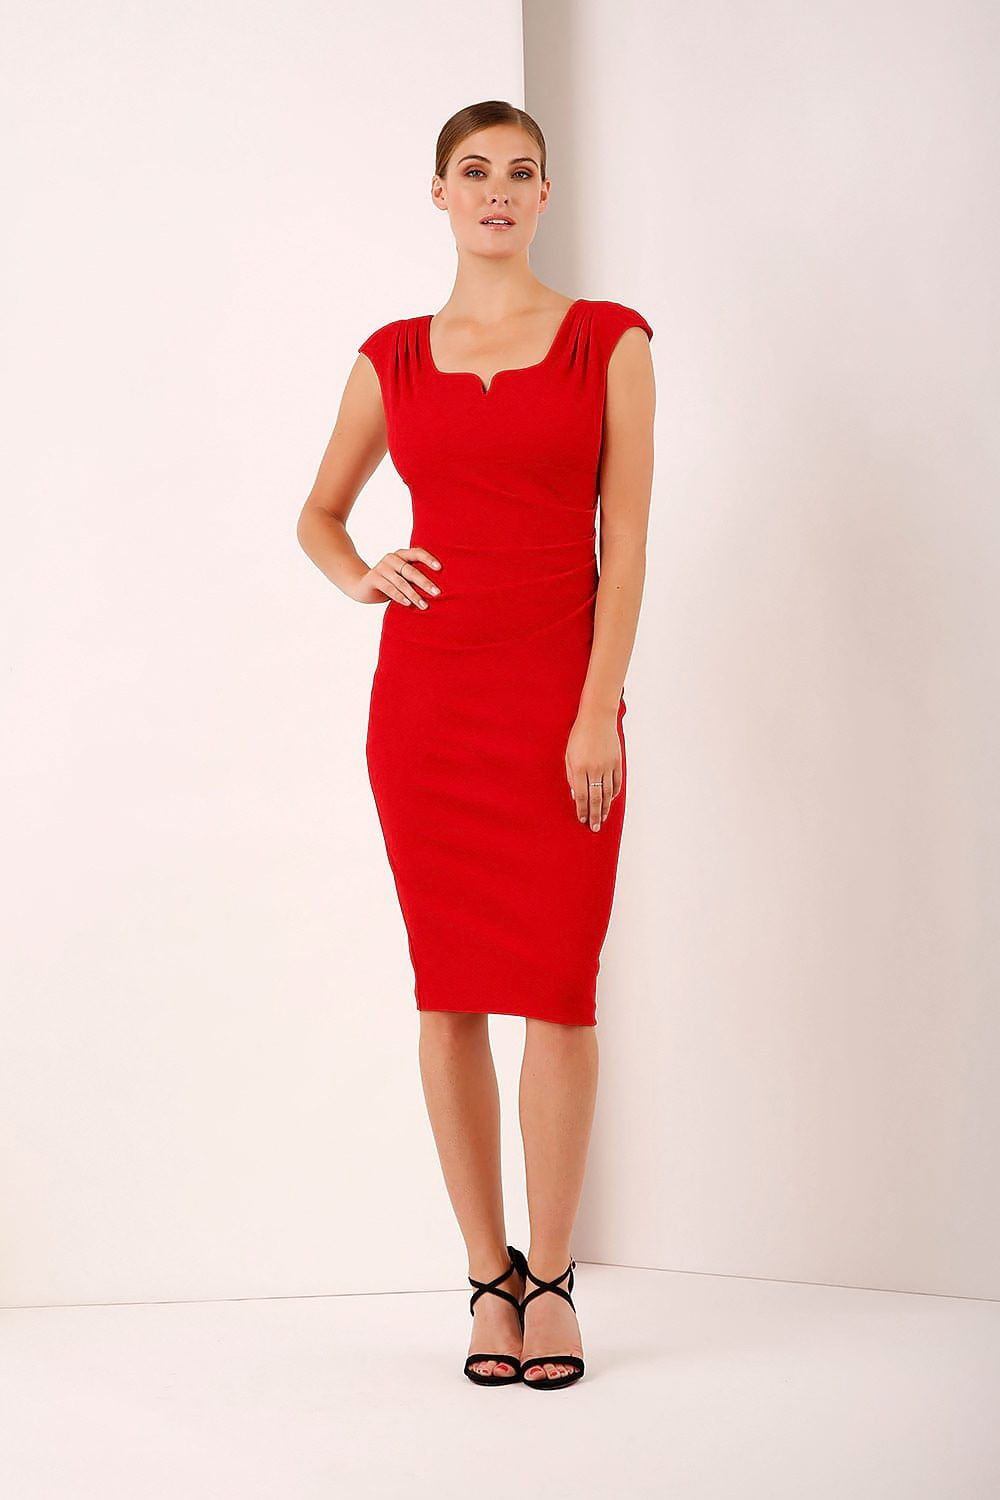 HYBRID_QUINN_SWEETHEART_NECKLINE_DRESS